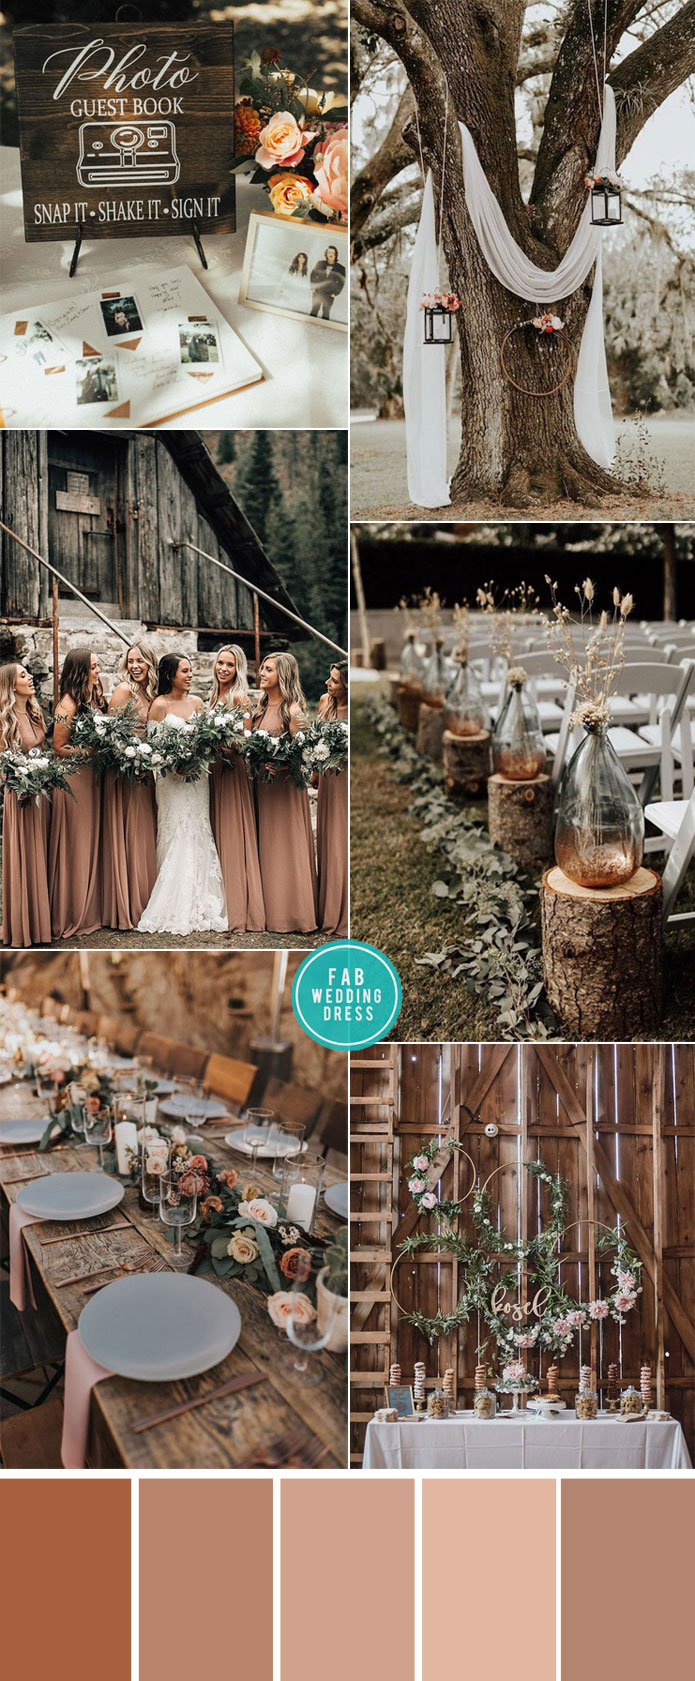 Rustic wedding in Earth tones color palette